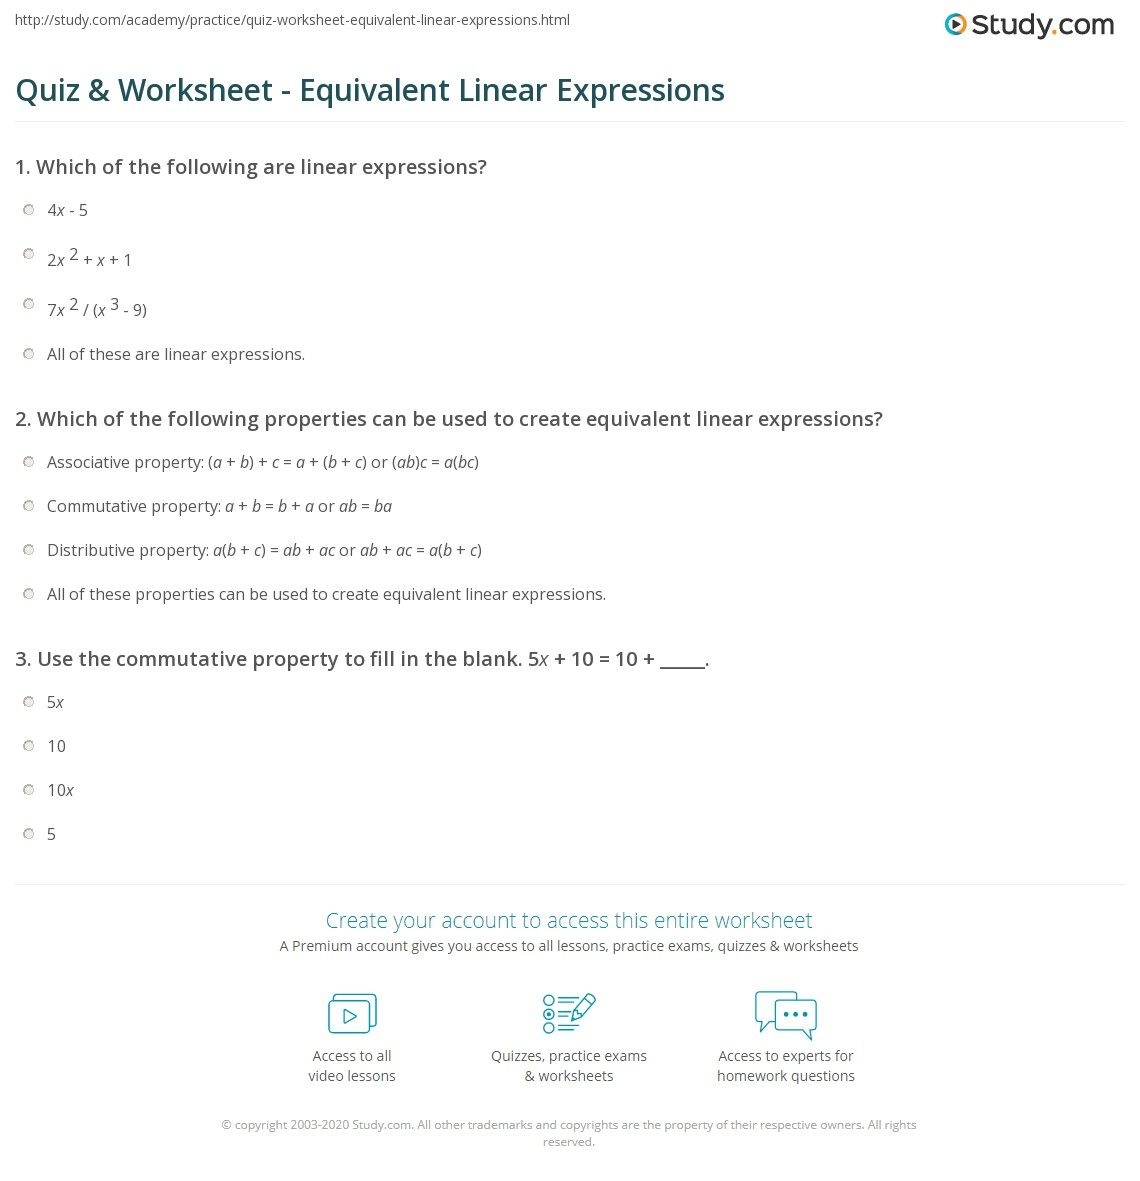 Quiz  Worksheet  Equivalent Linear Expressions  Study